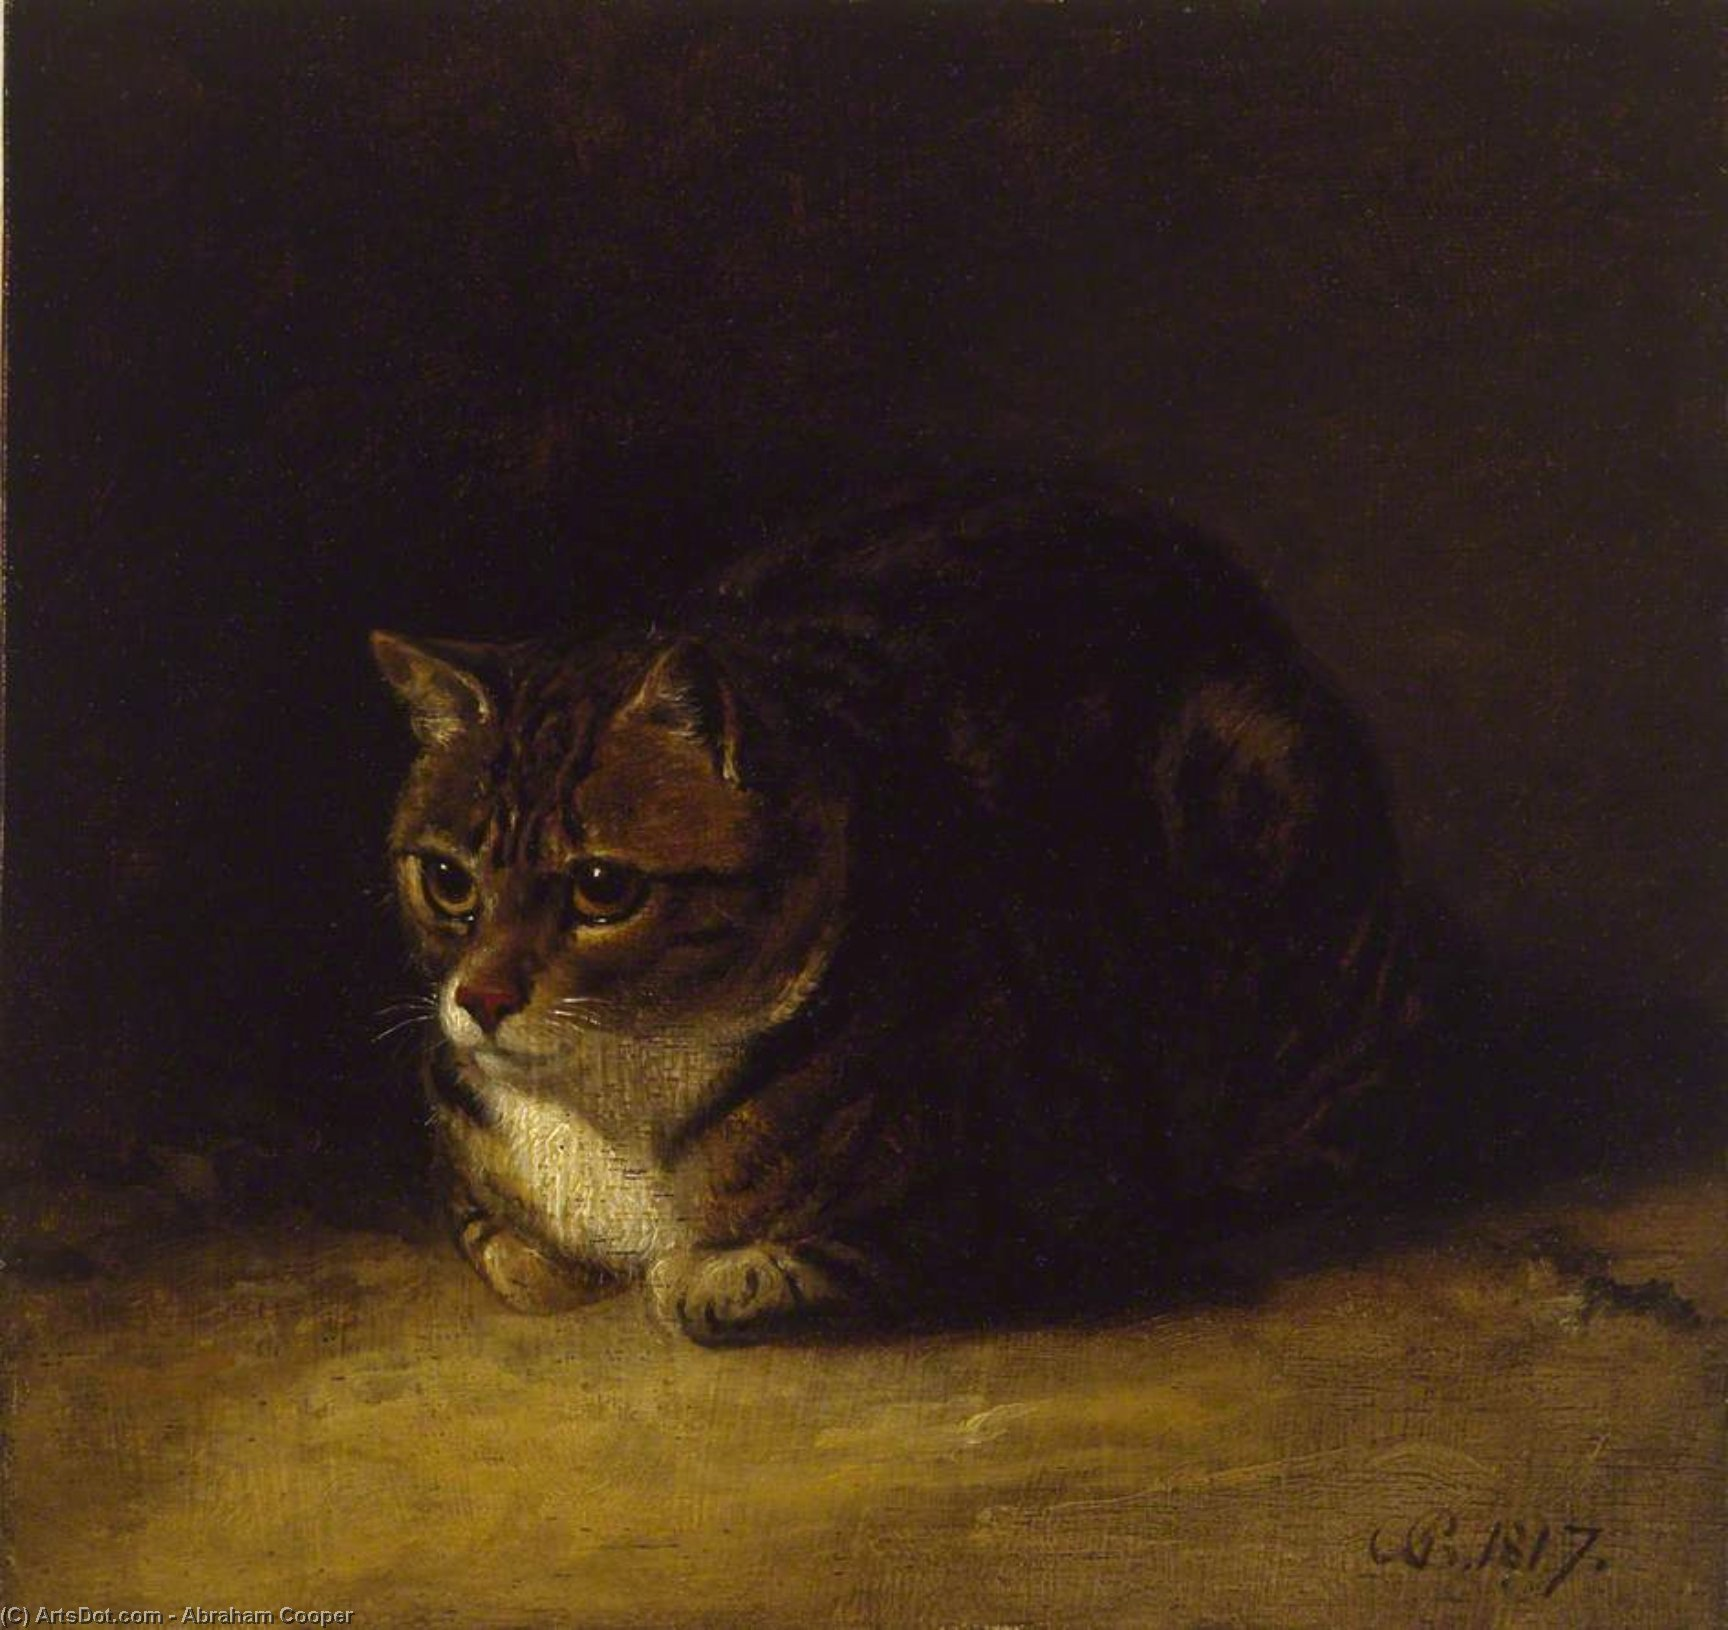 étude des a cat de Abraham Cooper (1787-1868, United Kingdom)